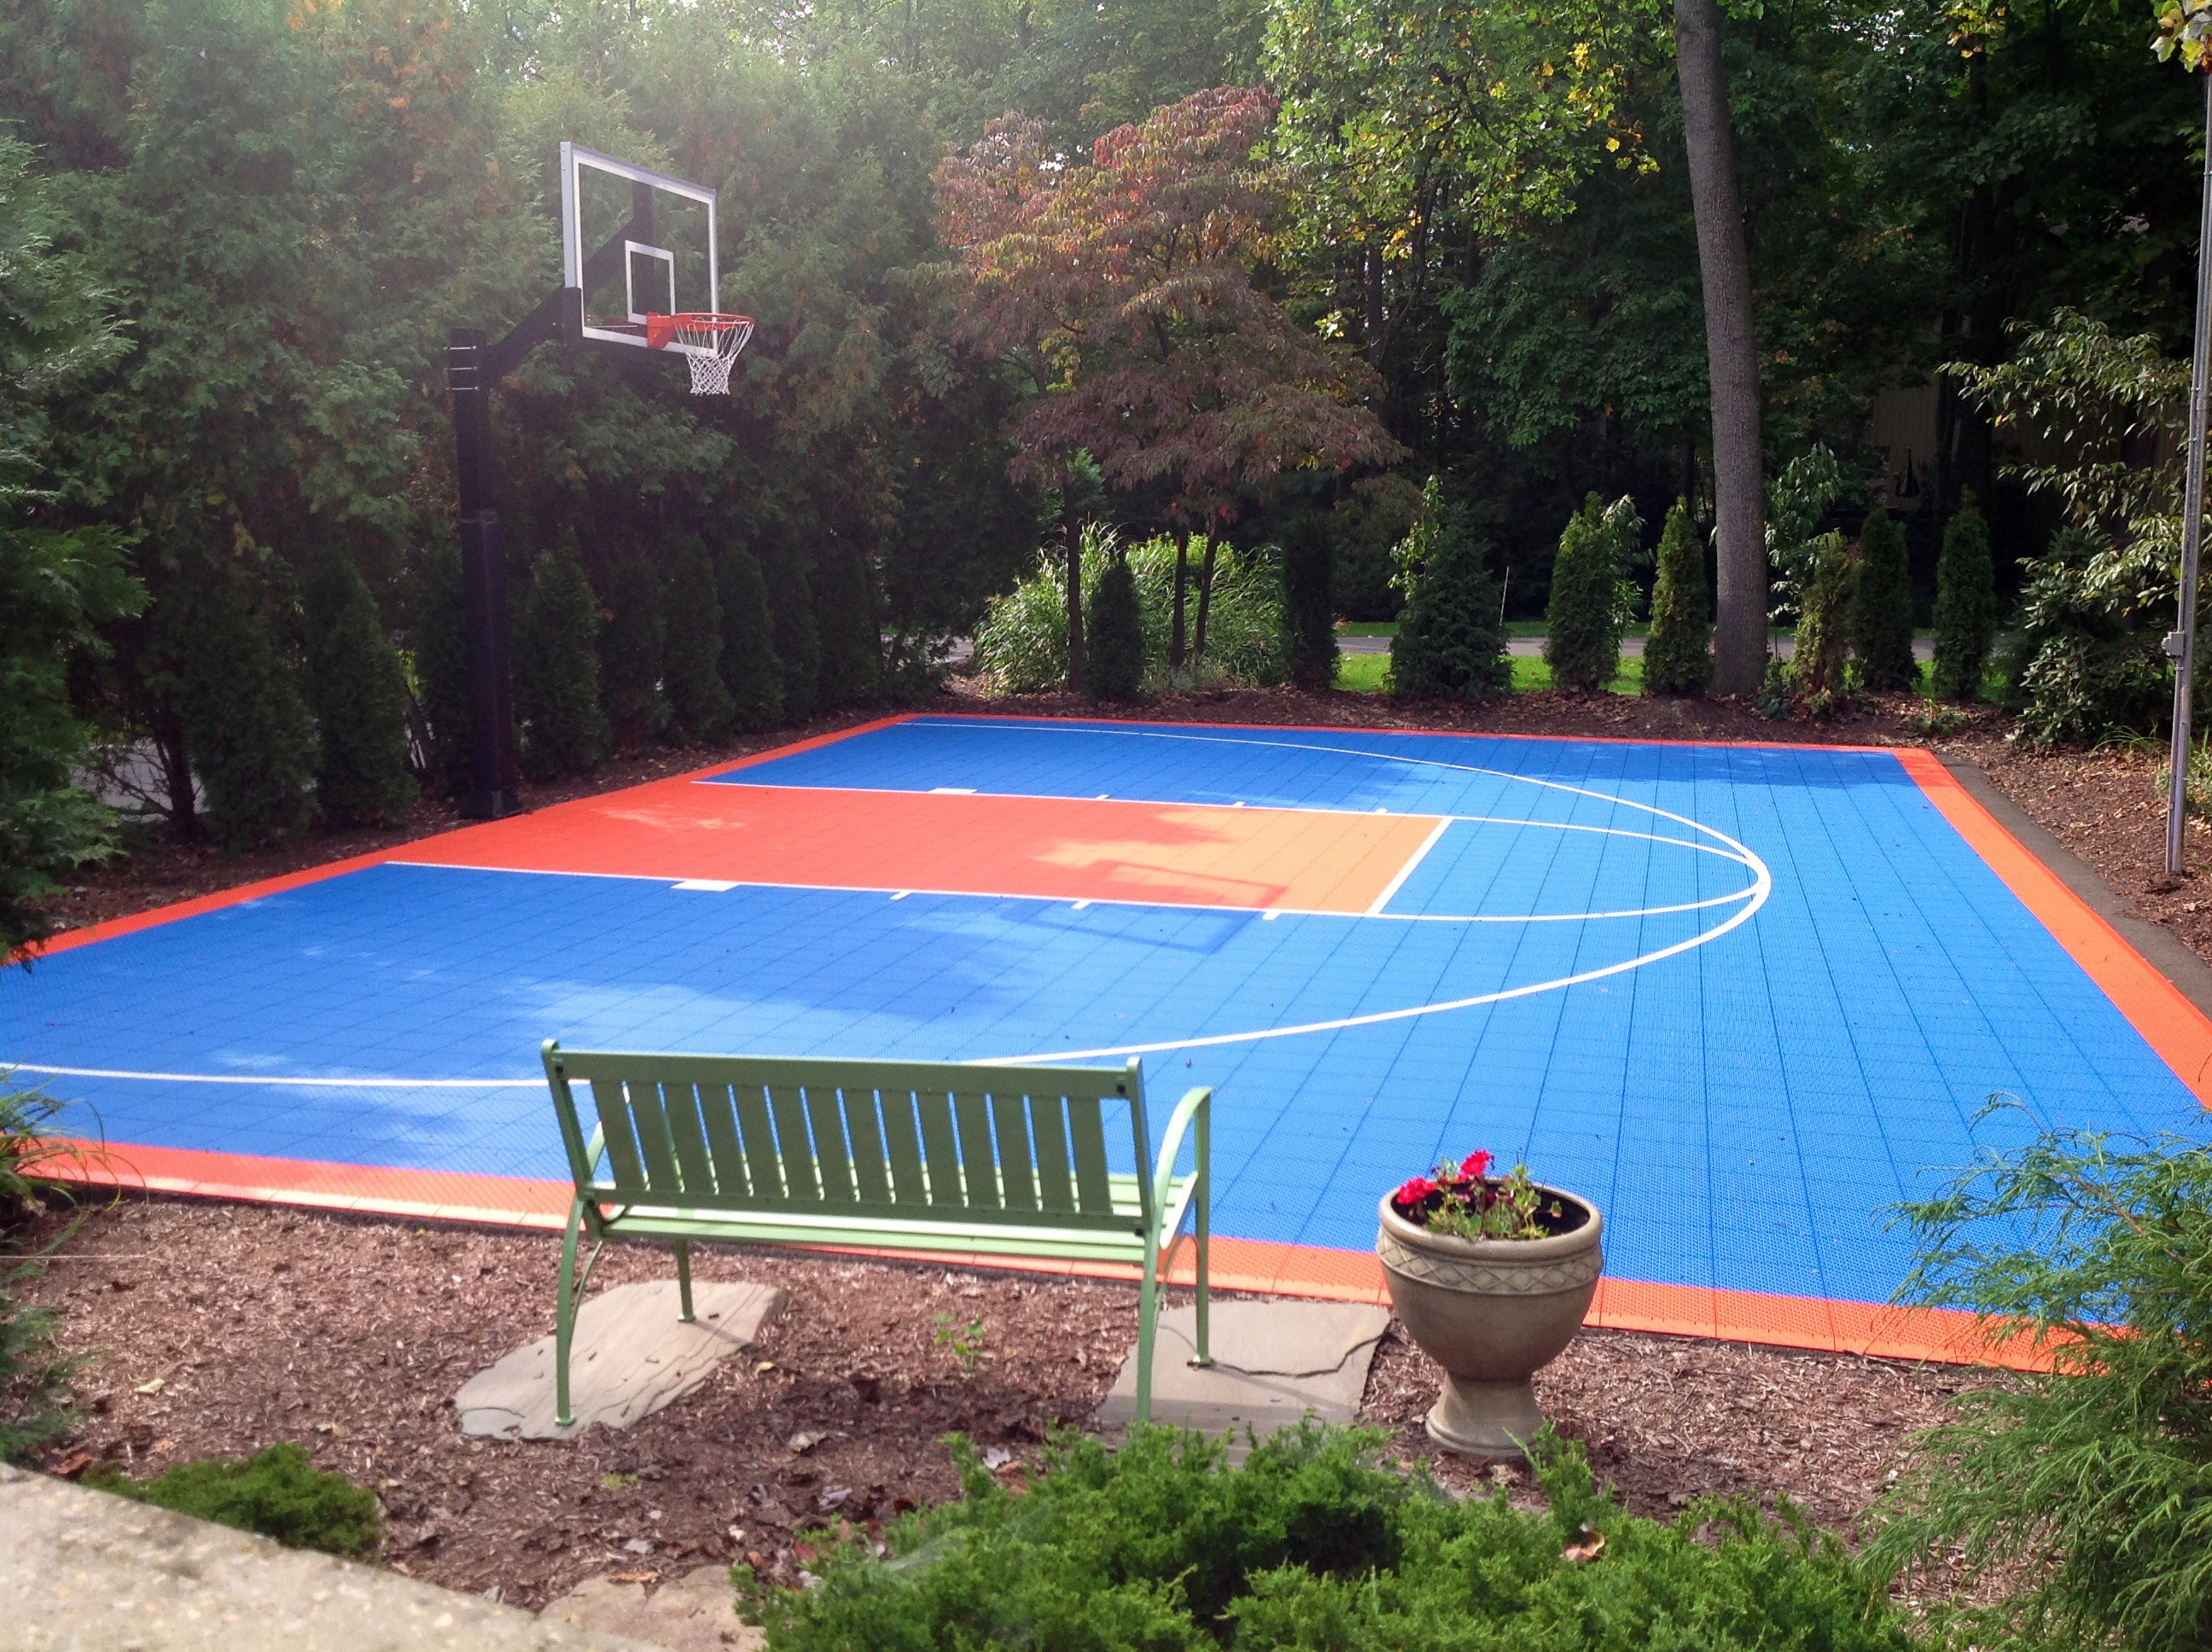 The Playing Area On The Half Court Is 46 Feet Wide And 30 Feet Deep